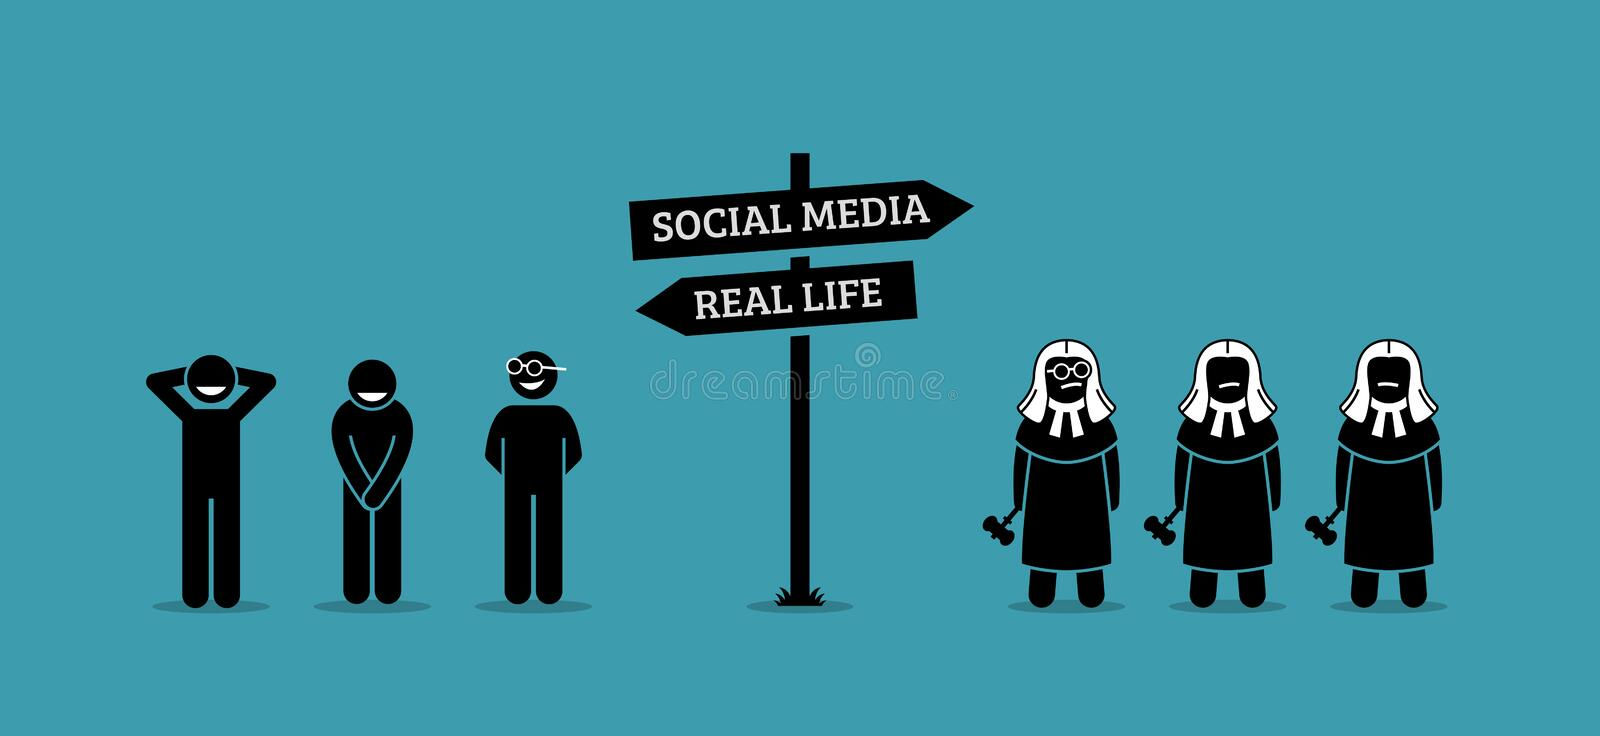 The difference between real life and social media human behaviors. vector illustration